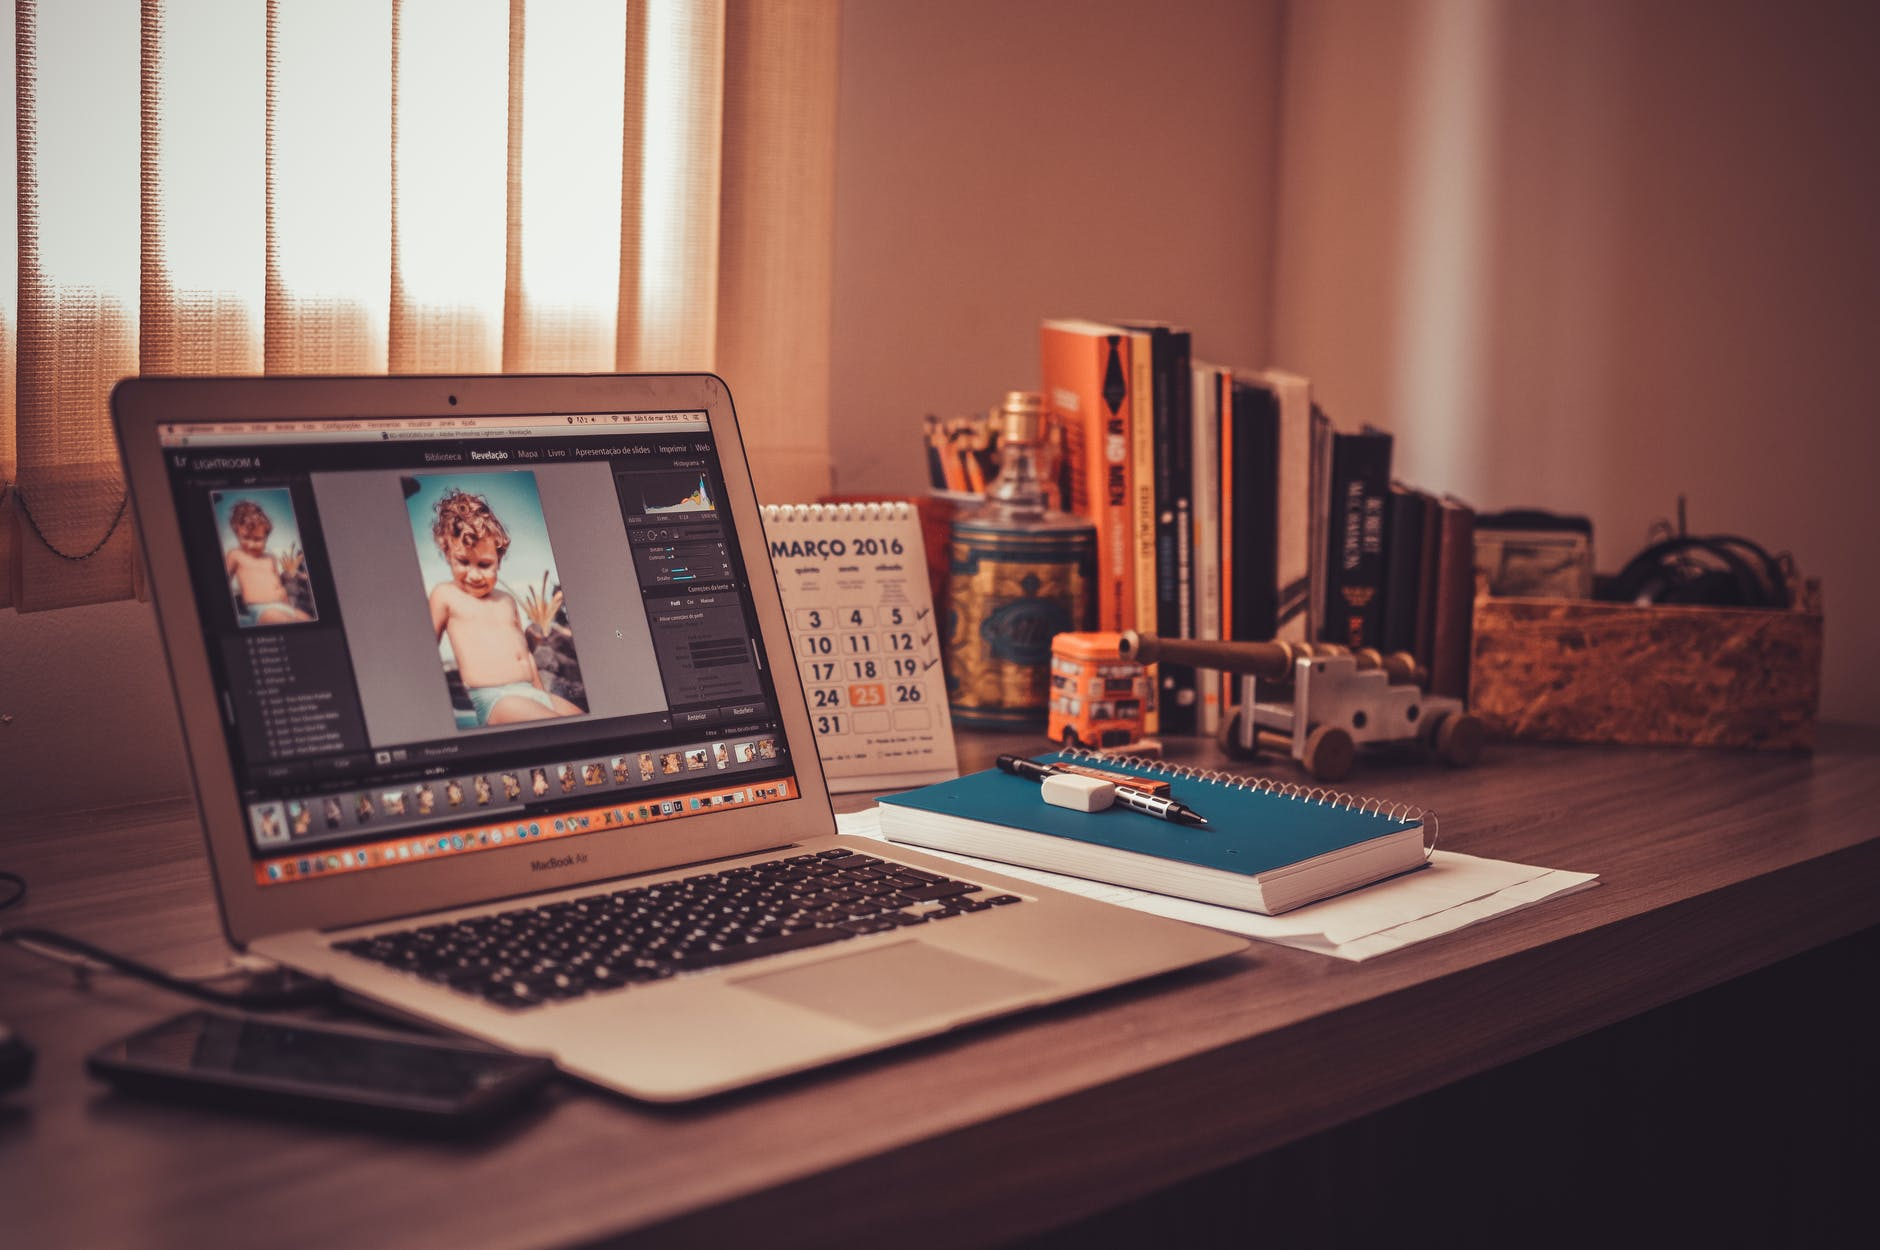 5 Essential Tips to Edit Your Photos Like a Pro